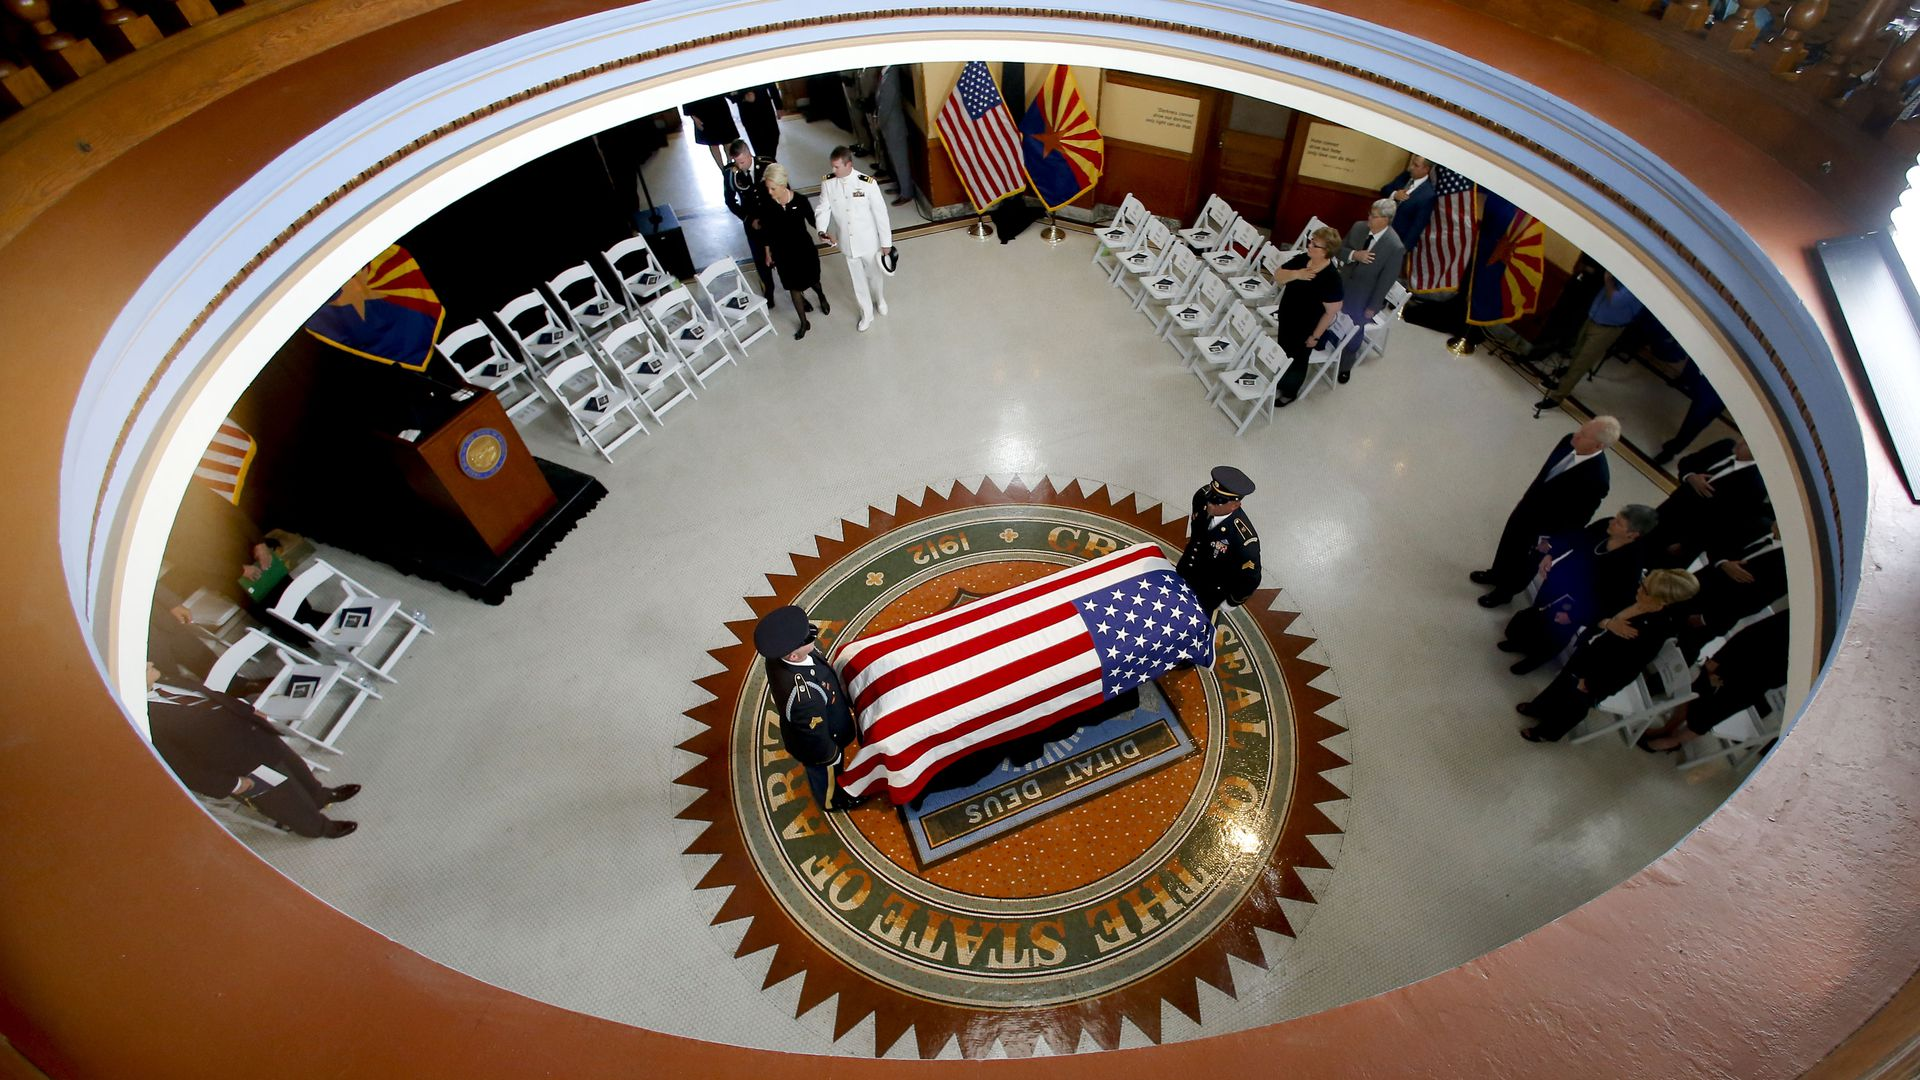 McCain's casket covered in an American flag, seen from above